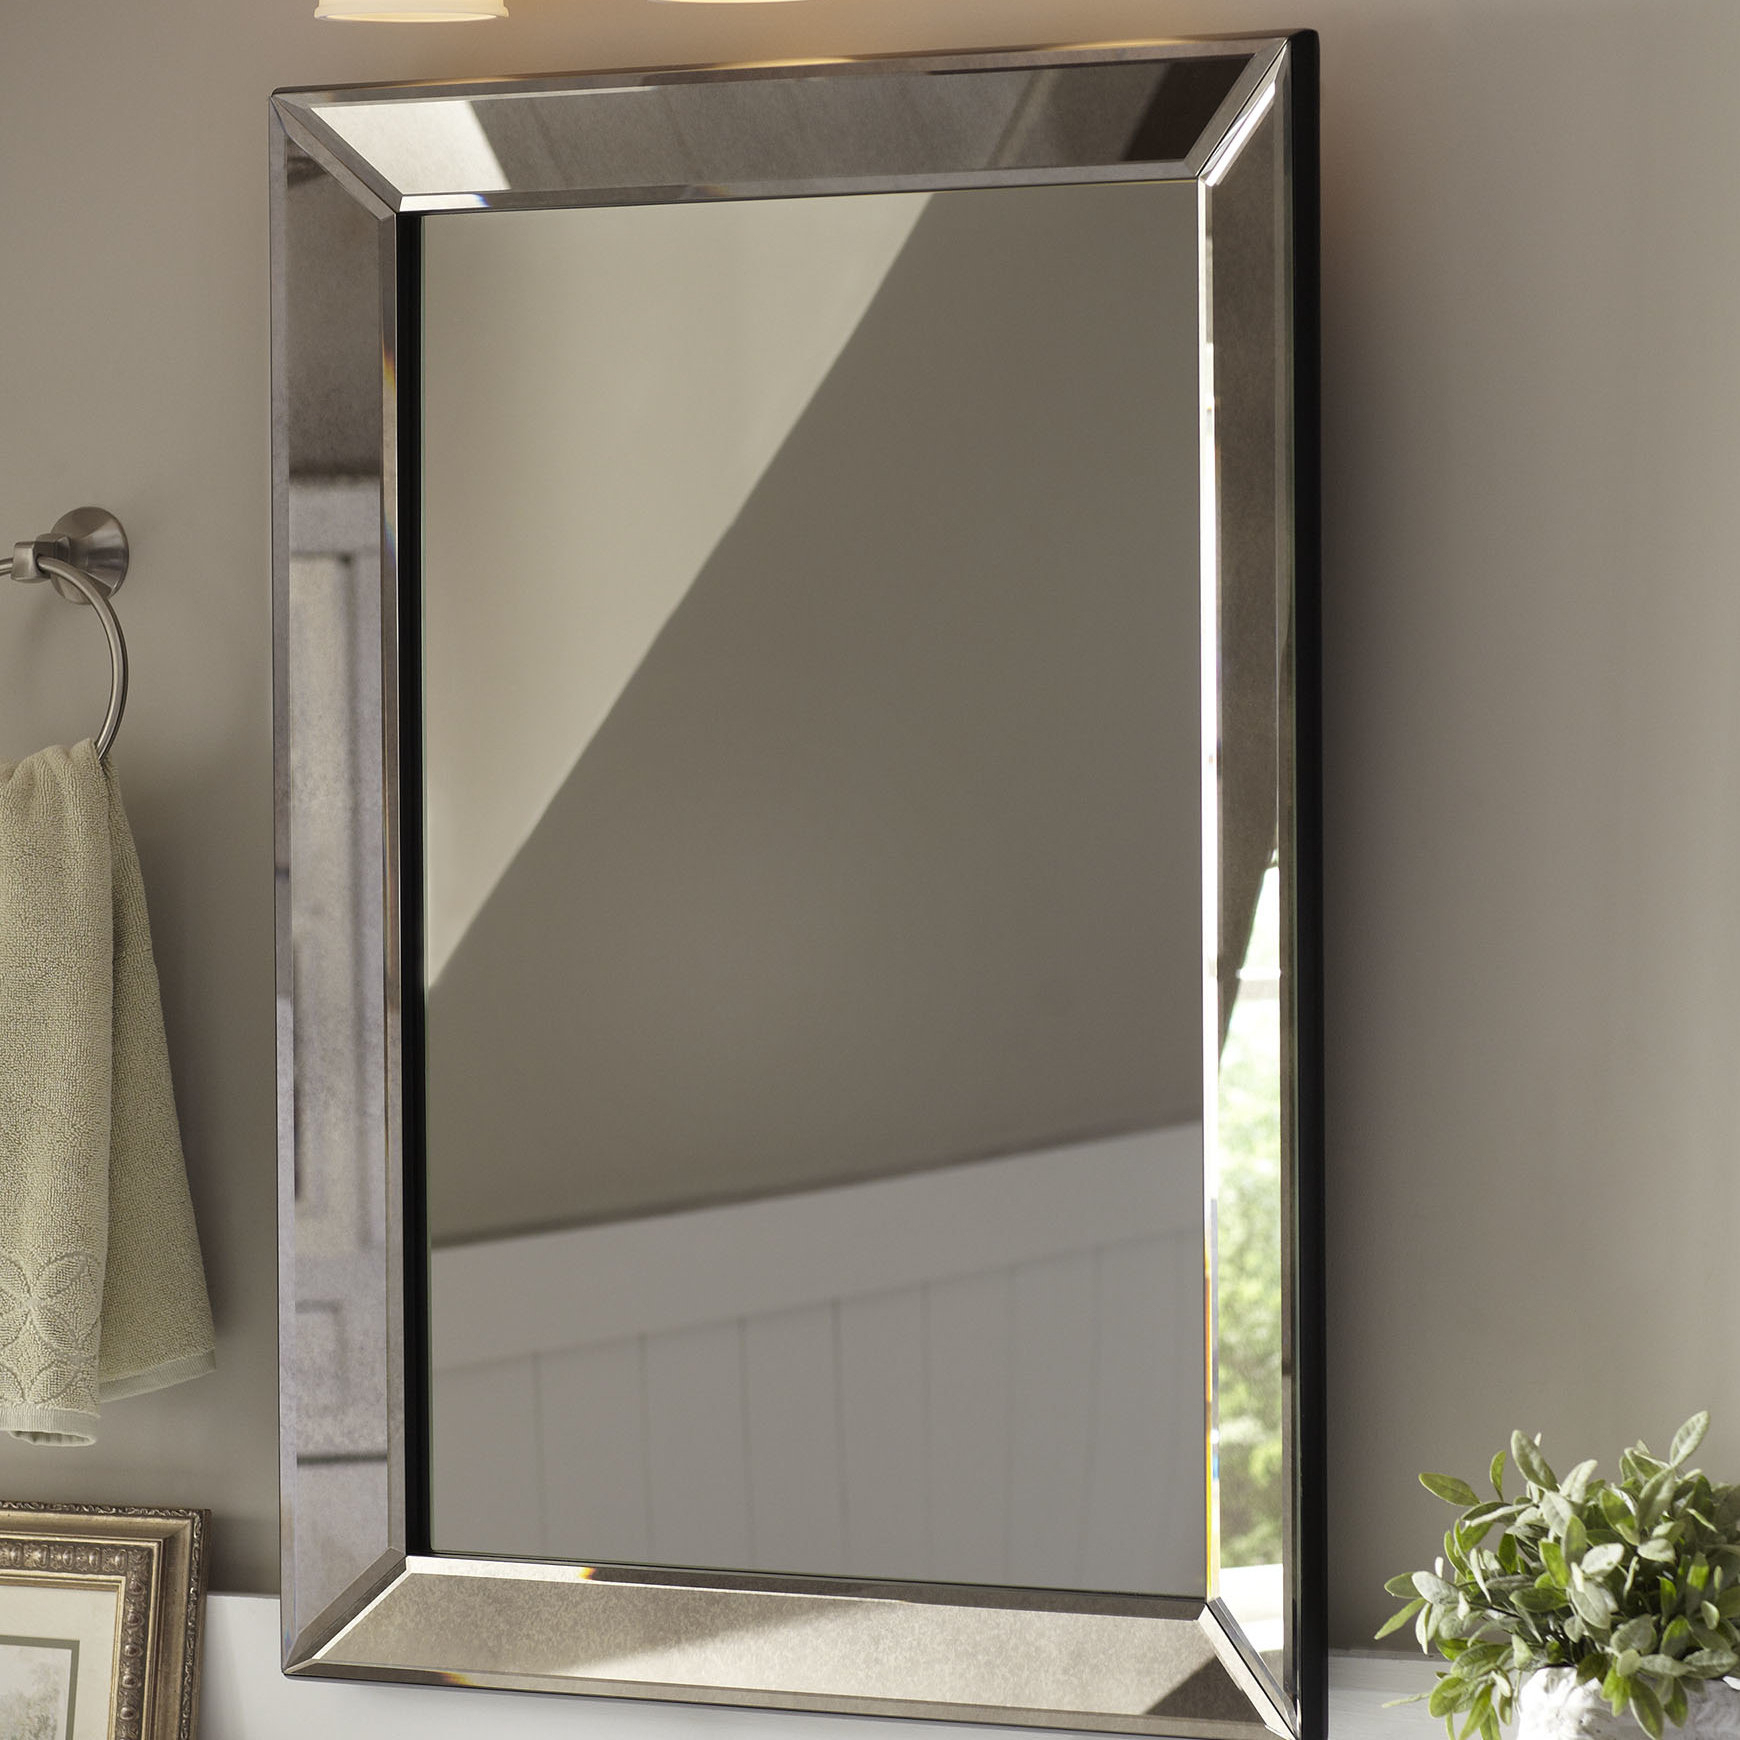 Farmhouse Mirrors | Birch Lane For Menachem Modern & Contemporary Accent Mirrors (Image 9 of 30)